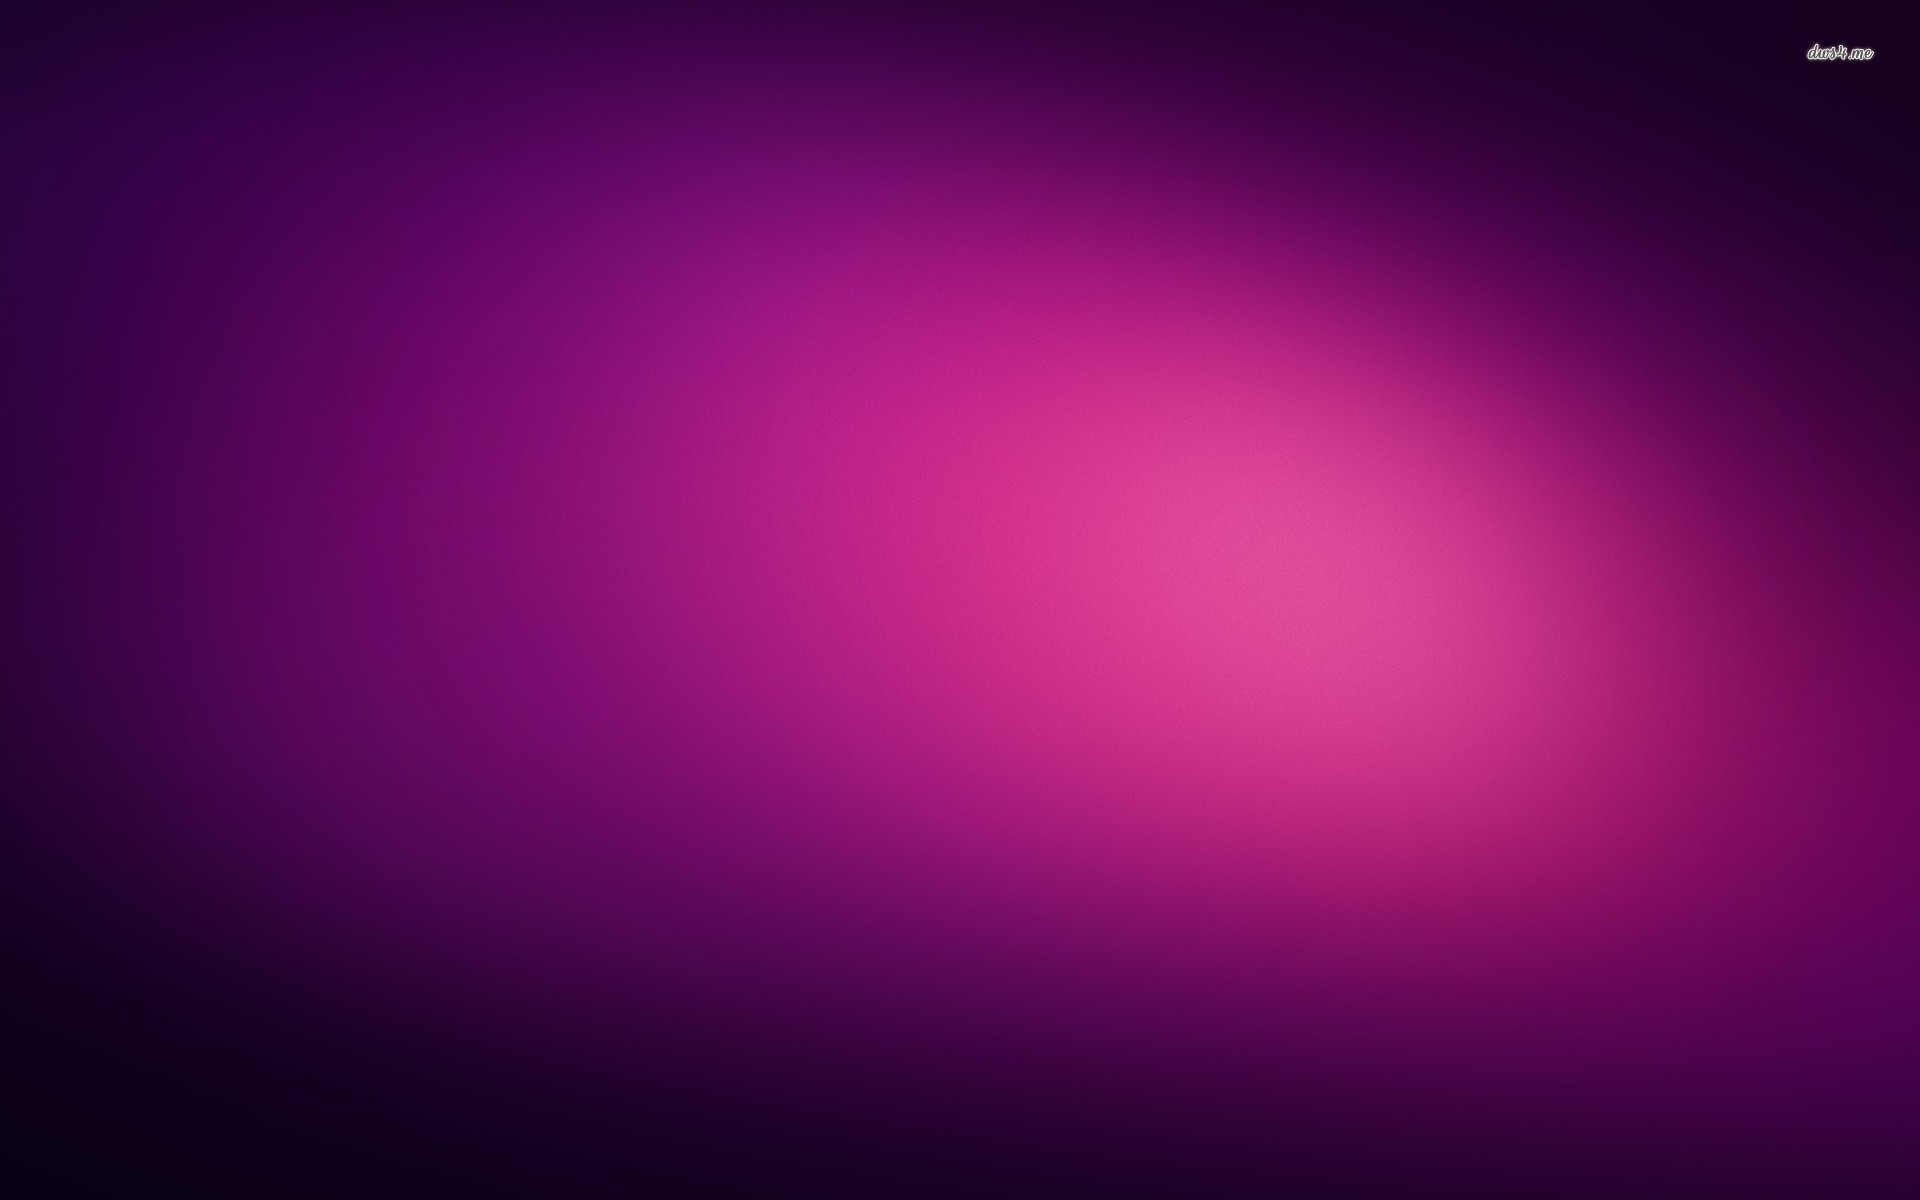 ... Purple gradient wallpaper 1920x1200 ...